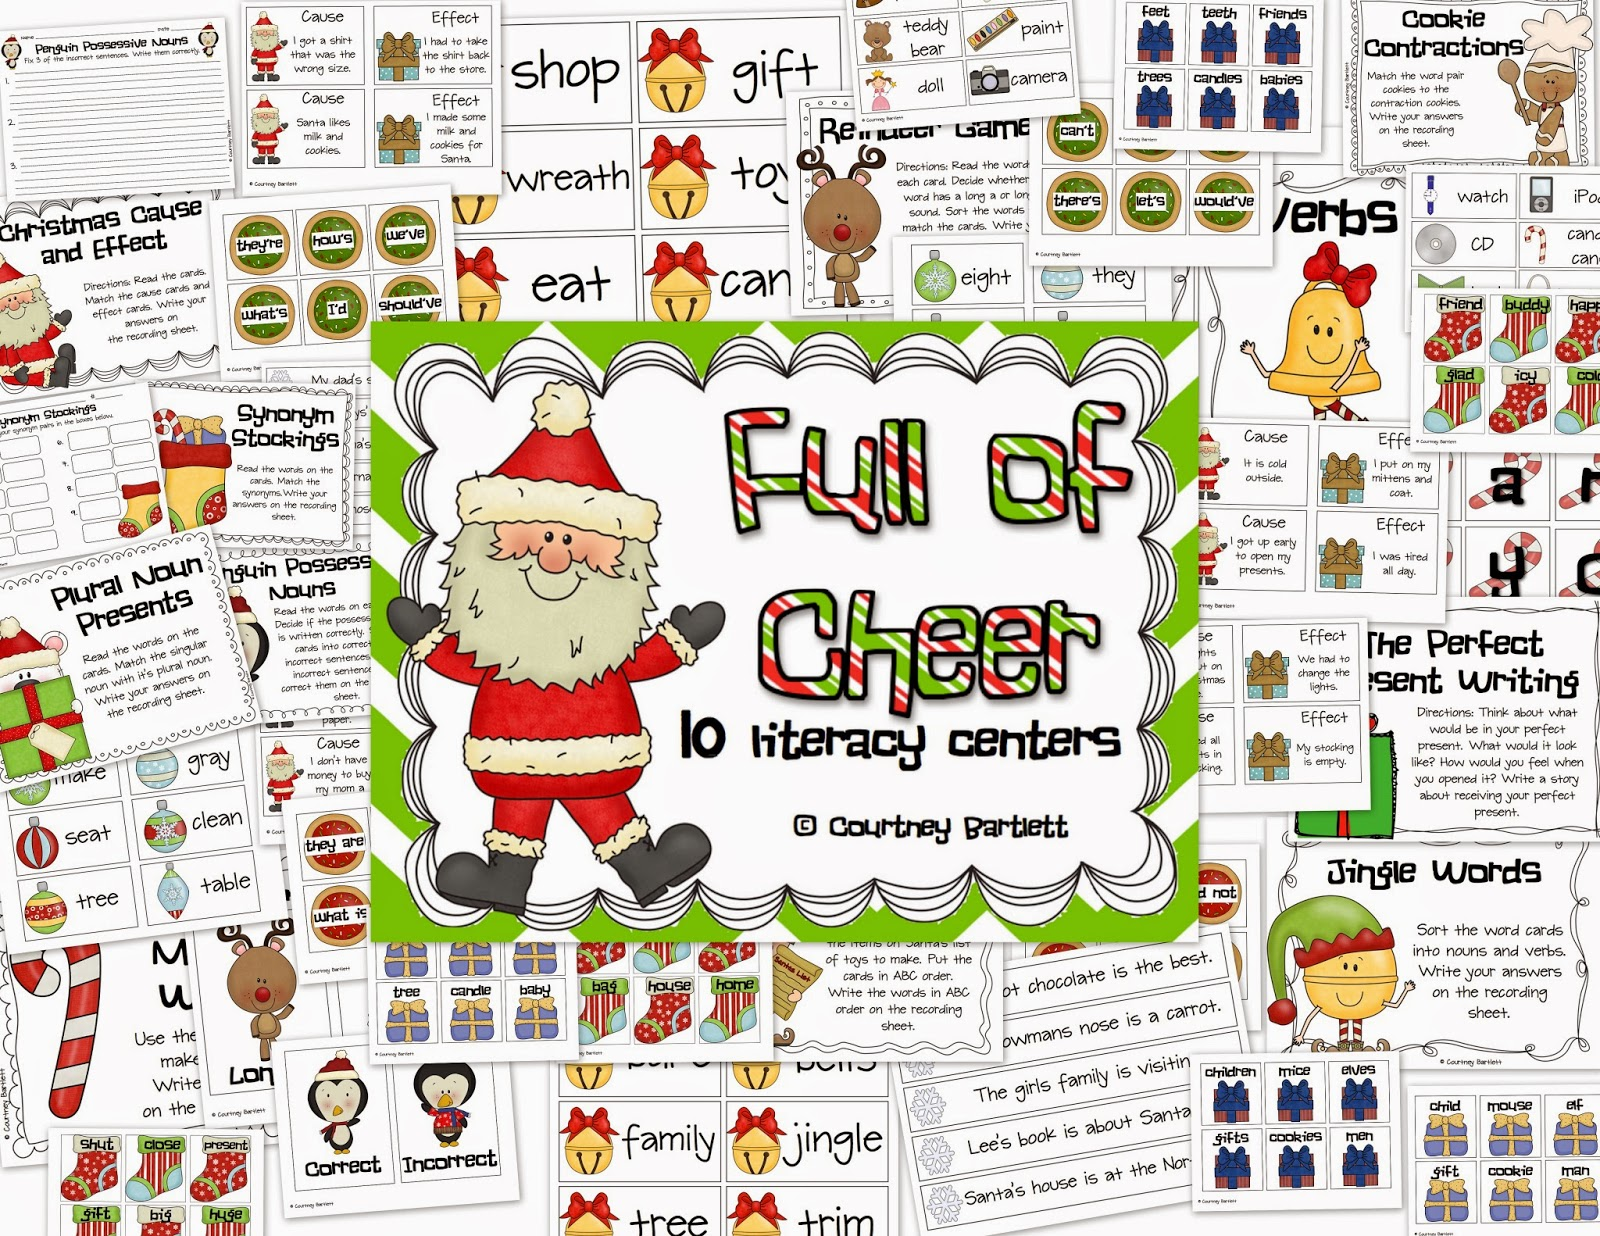 http://www.teacherspayteachers.com/Product/Full-of-Cheer-center-bundle-1585027